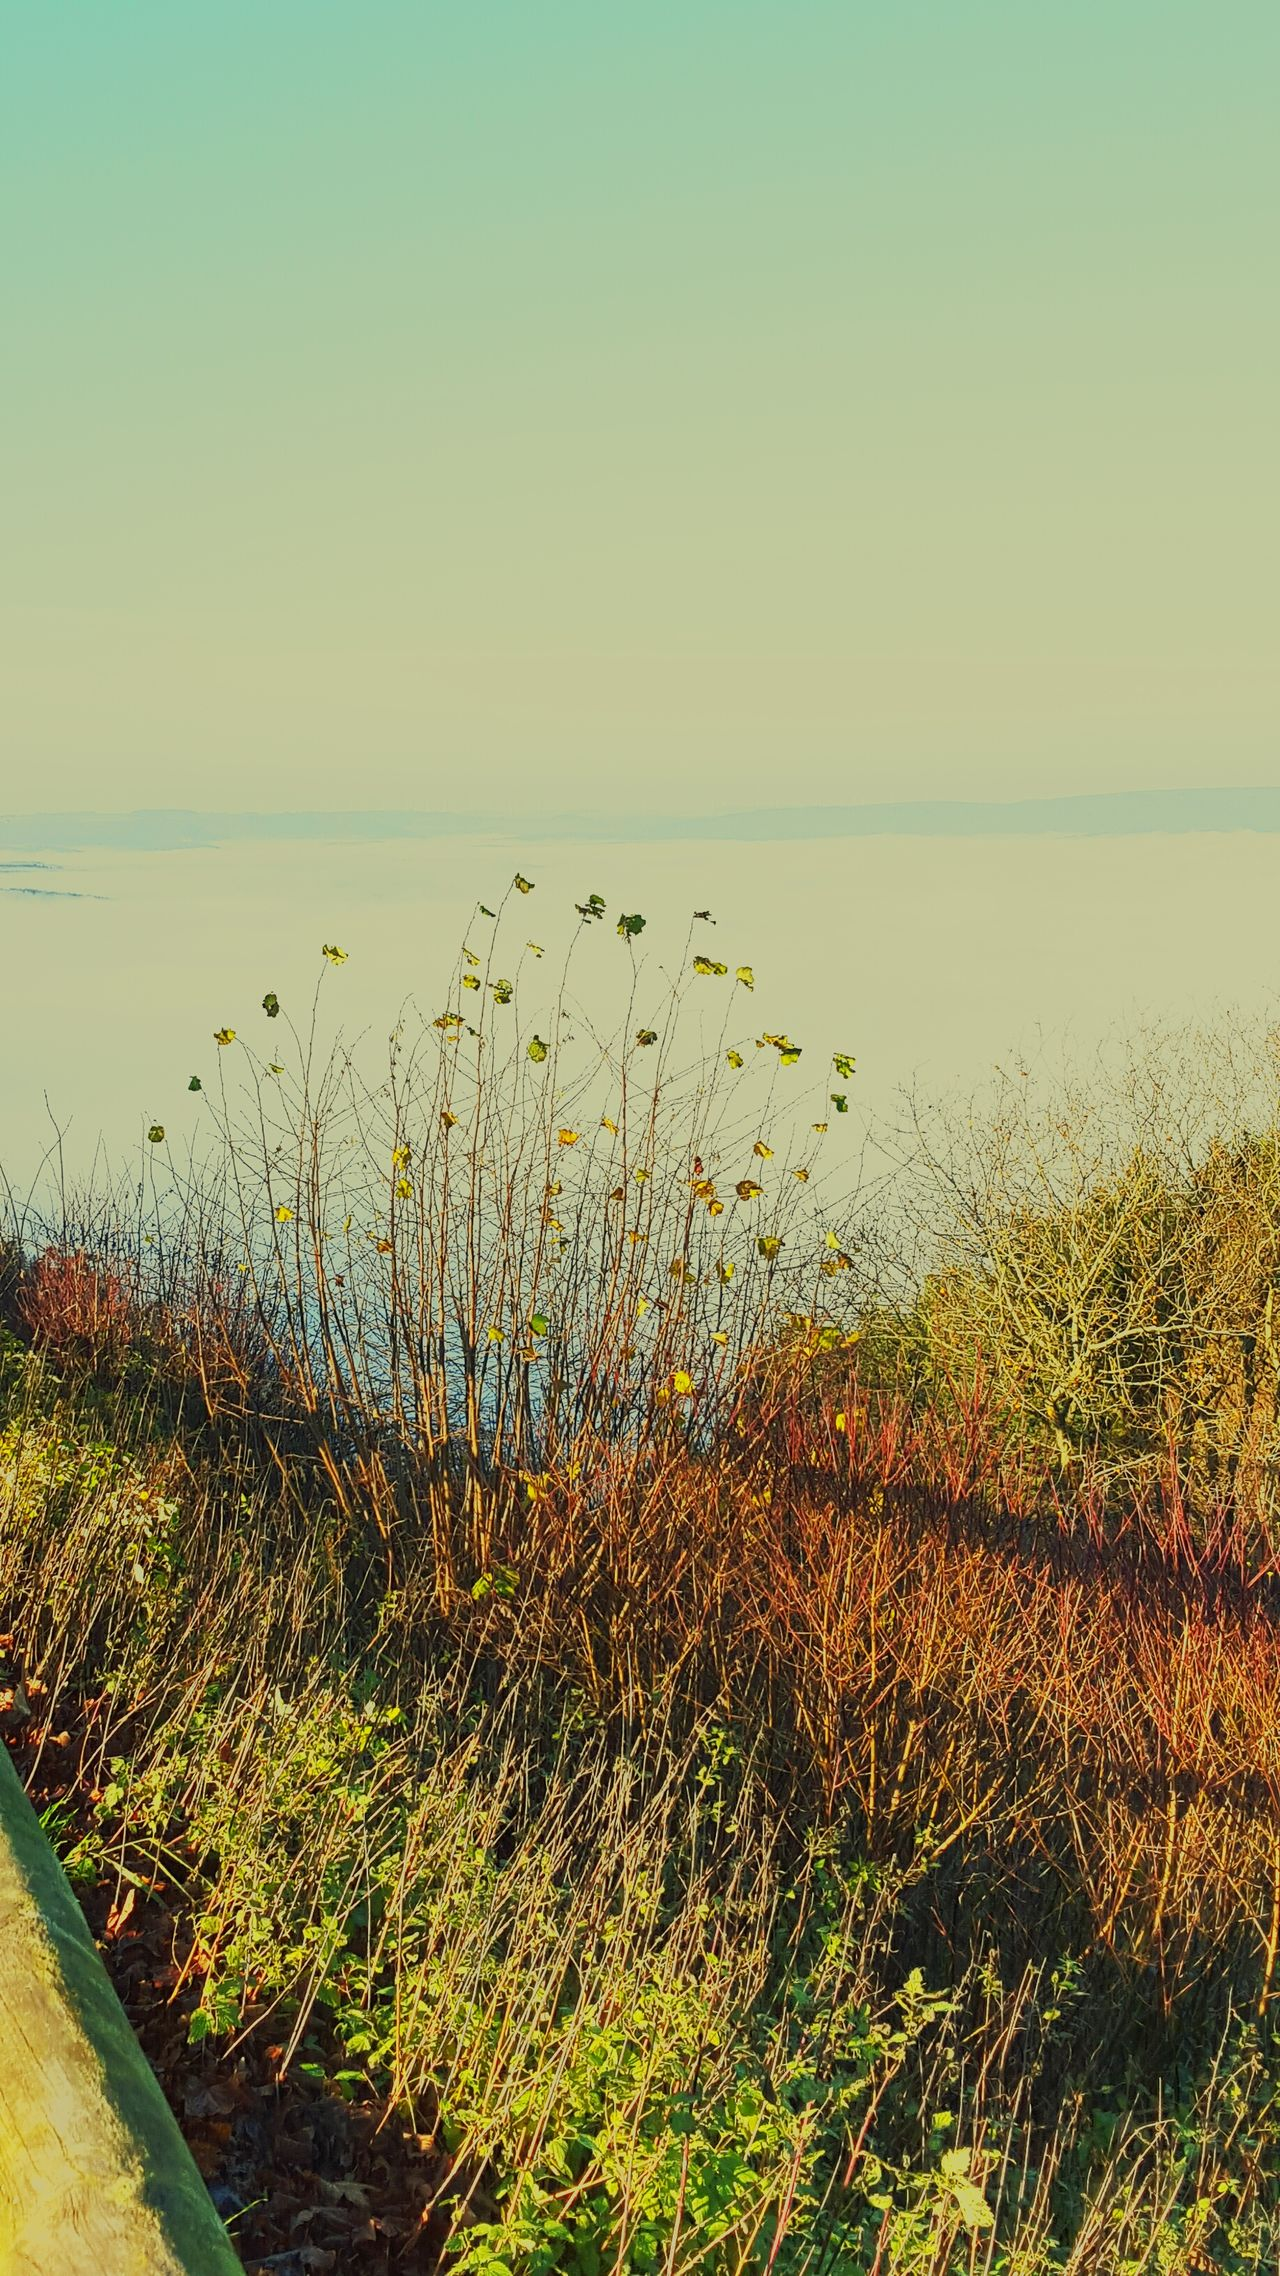 Leaves Lakeofclouds Seaoffog Fall_collection Fall Foggy Foggy Morning Seaofclouds Fog Fall Beauty Branch Twig Nature Beautiful Nature